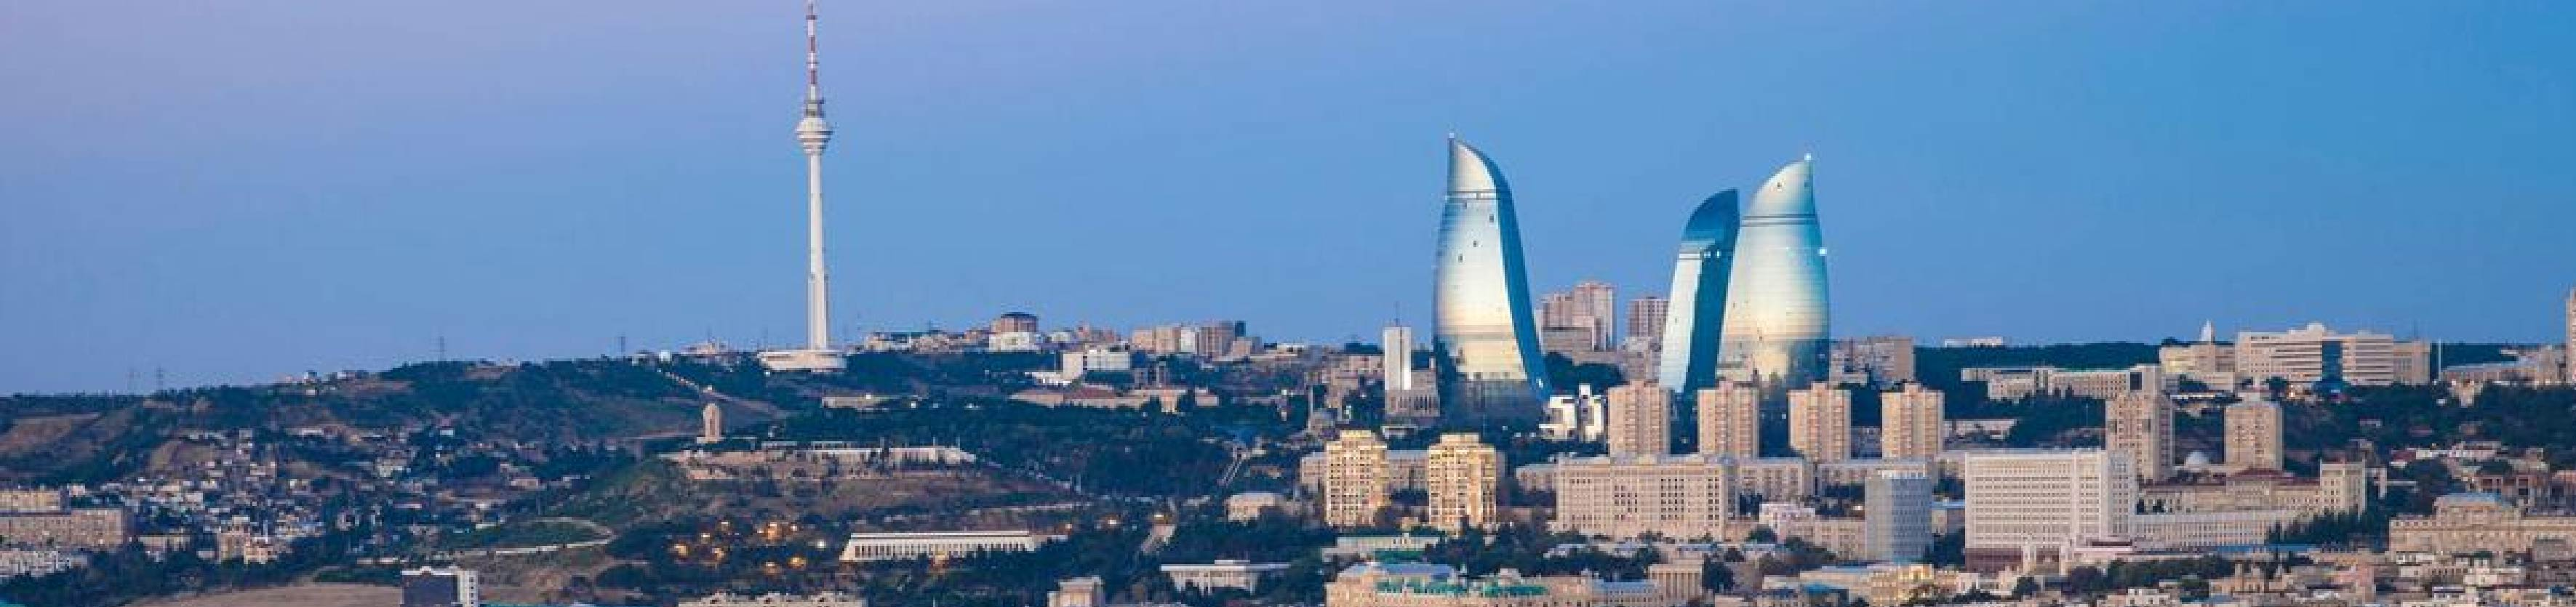 Baku Hotels: Top 10 hotels in the charming city of Baku